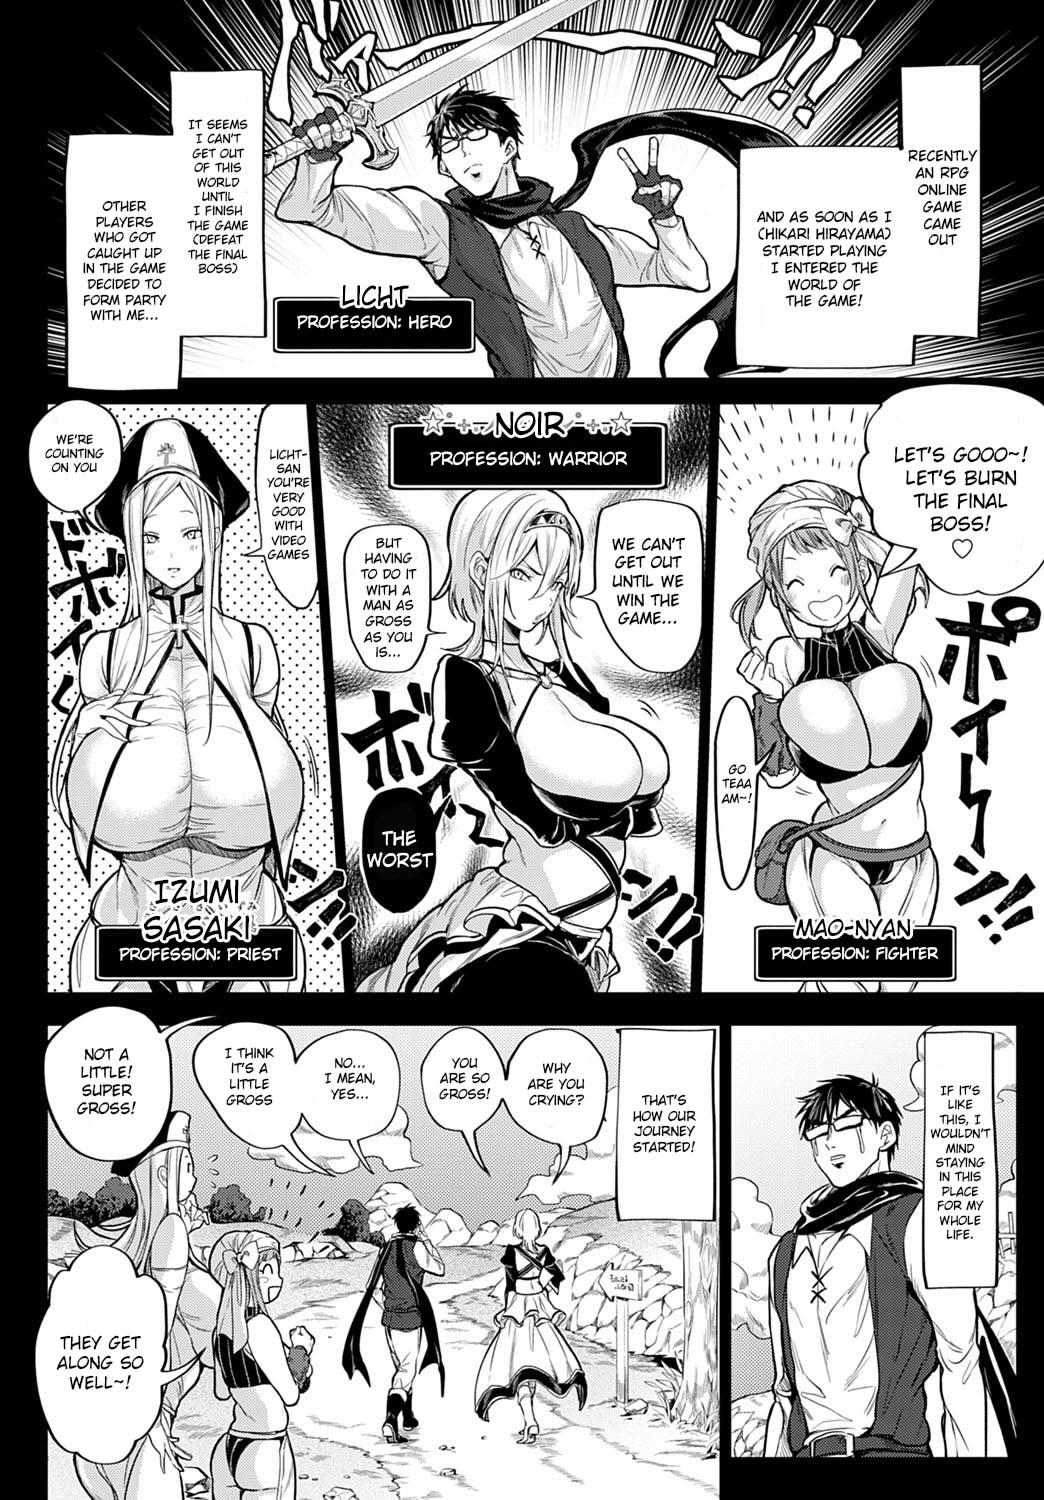 [Announ] Ore Saikyou Quest ~Isekai Harem no Sho Jou~   My story with my Harem in another world Ch 1,2 (COMIC Anthurium 2020-11,2021-02) [English] [Digital] 1